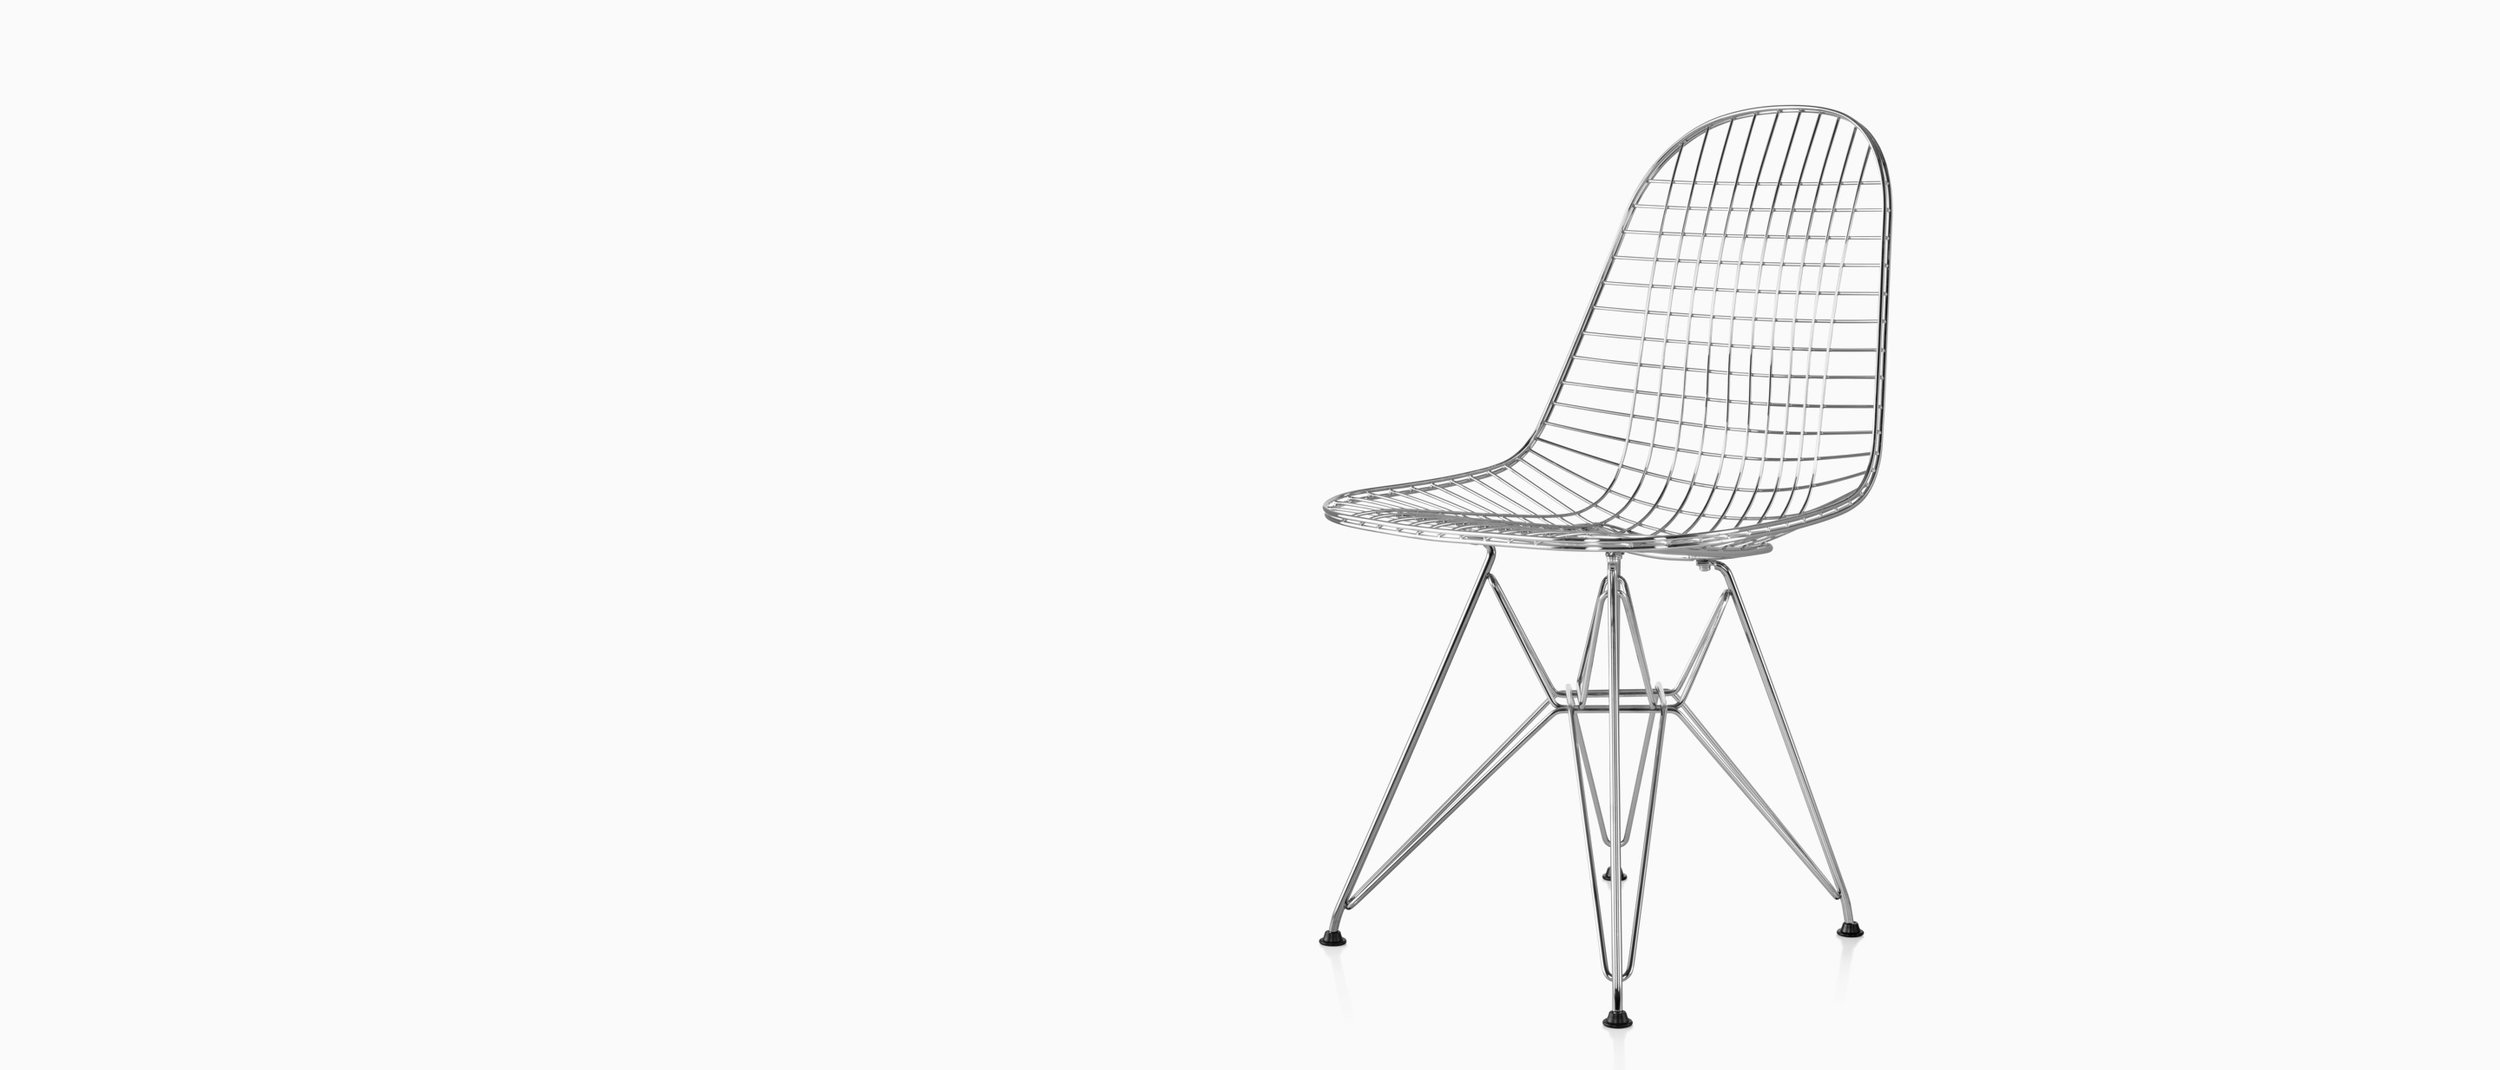 mh_prd_ovw_eames_wire_chairs.jpg.rendition.2880.1233.jpg